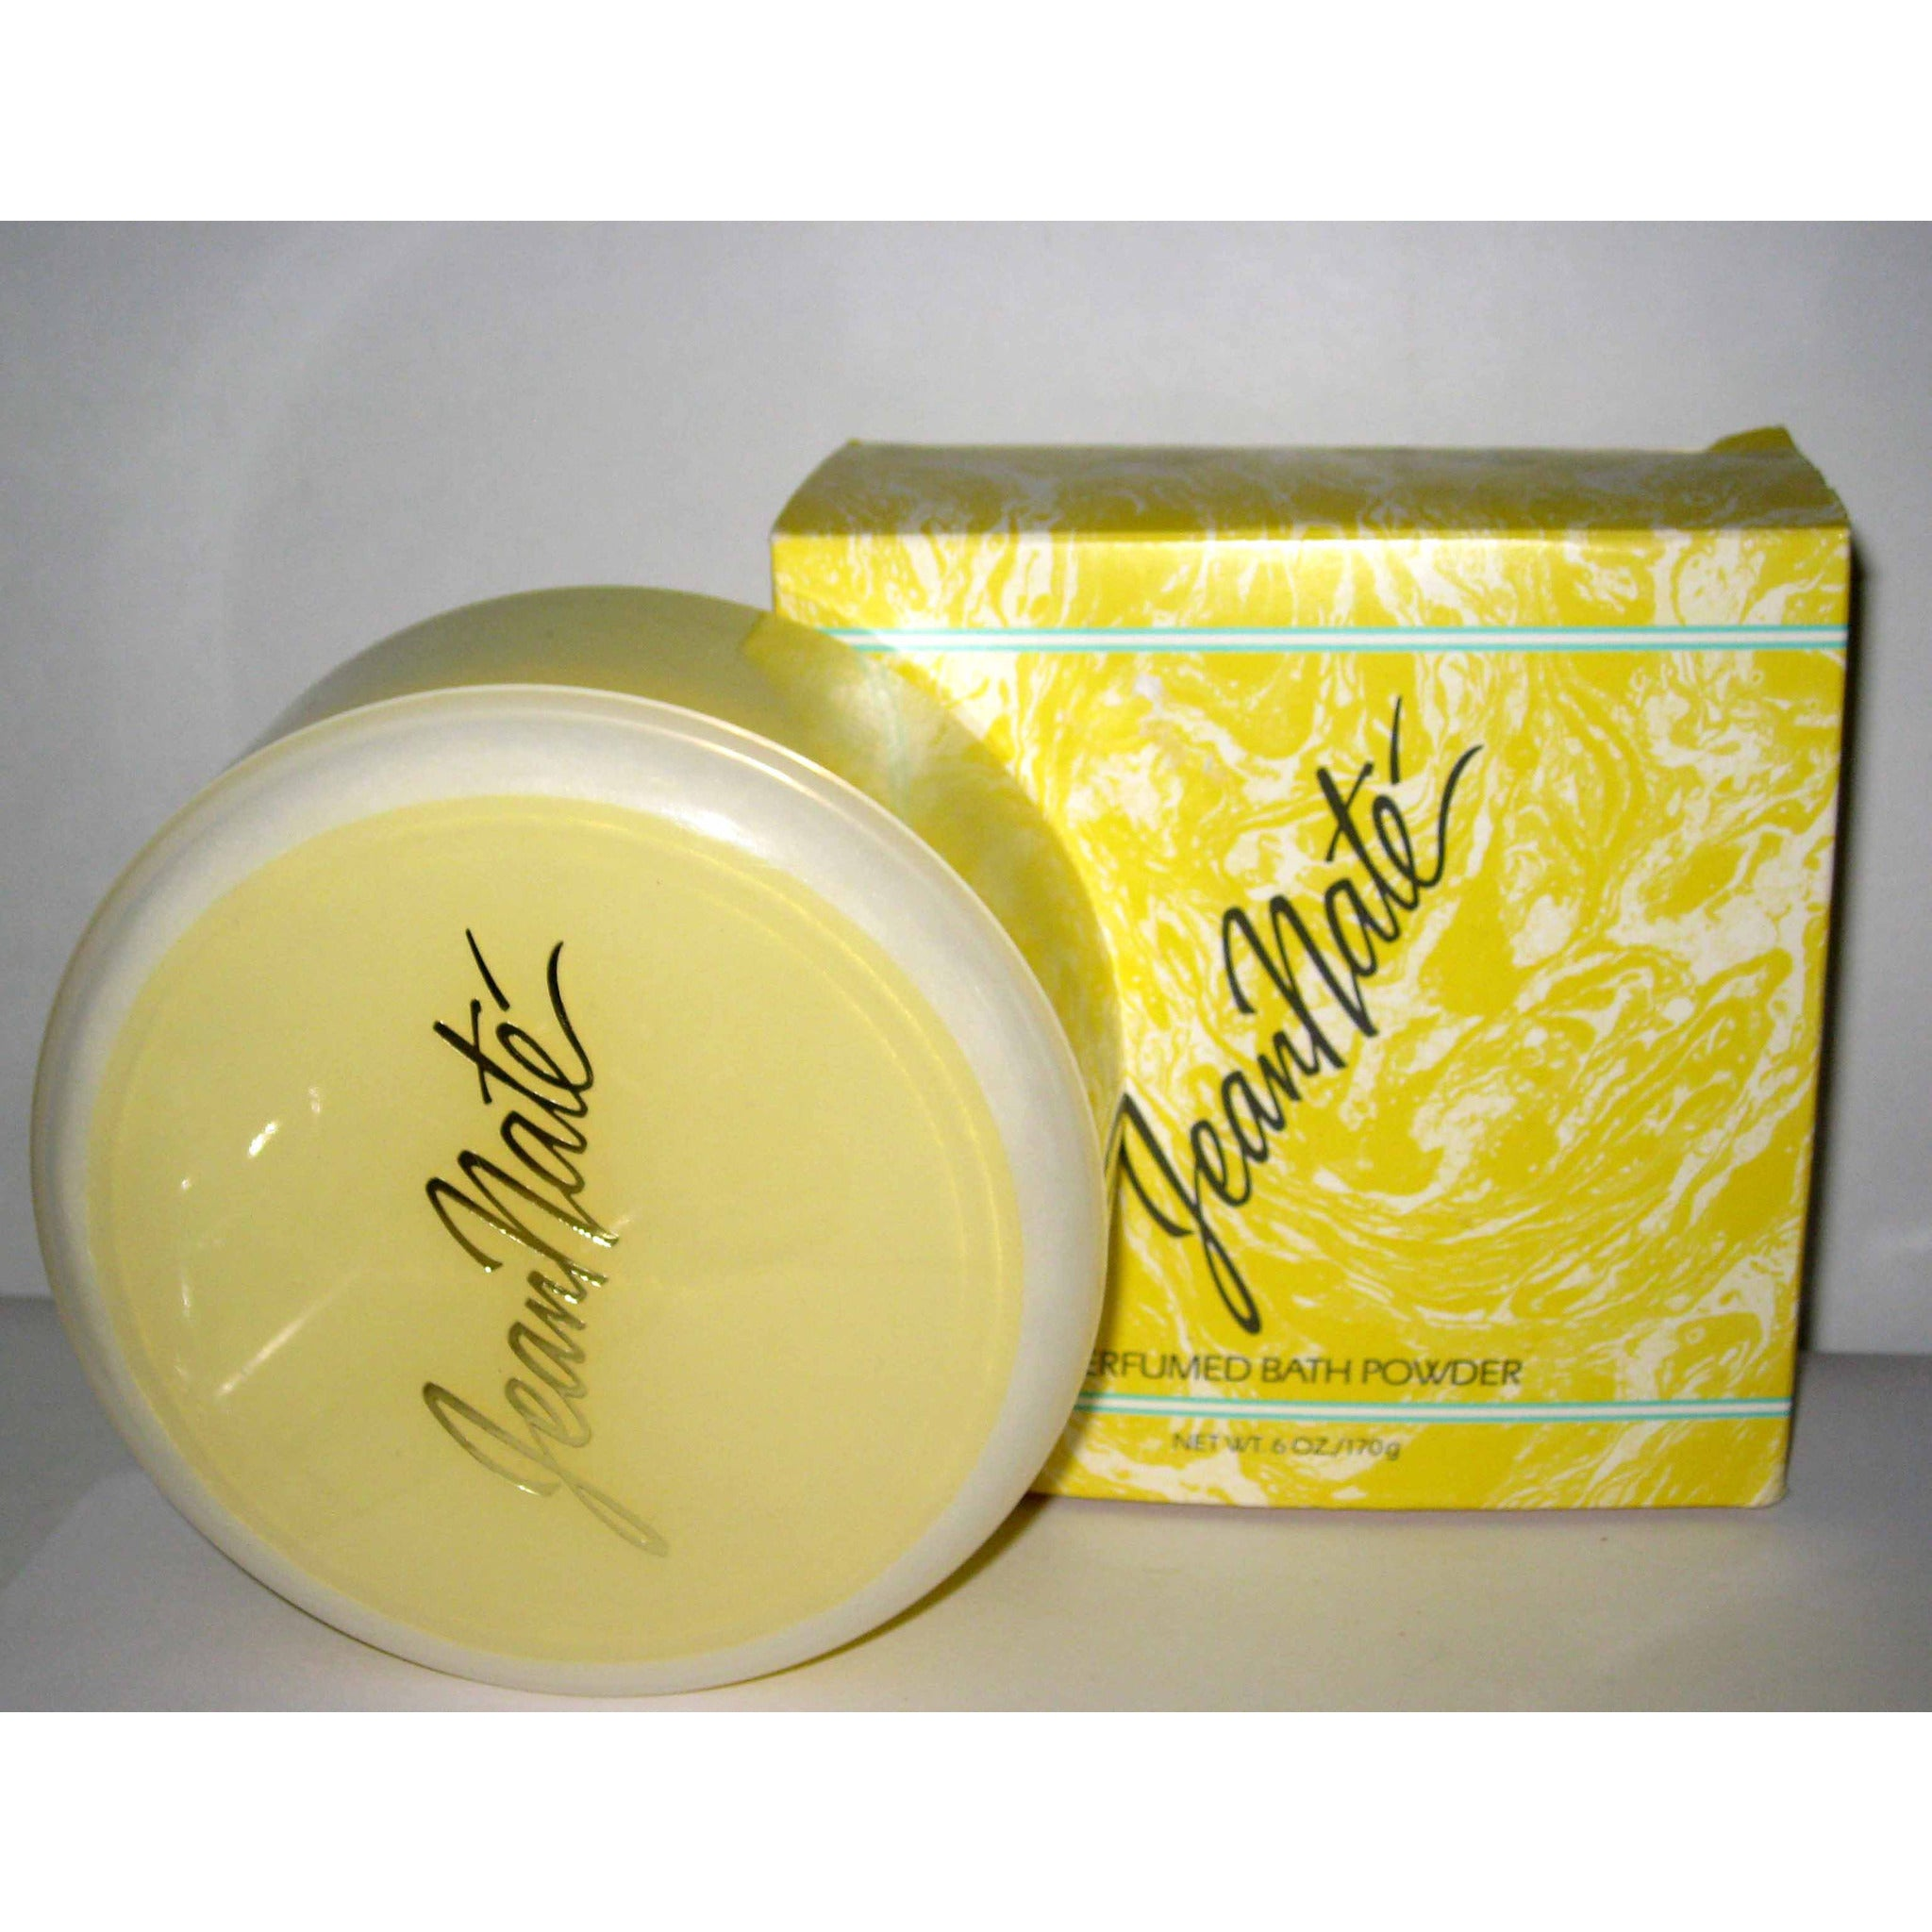 Vintage Jean Nate Bath Powder By Charles of the Ritz | Quirky Finds